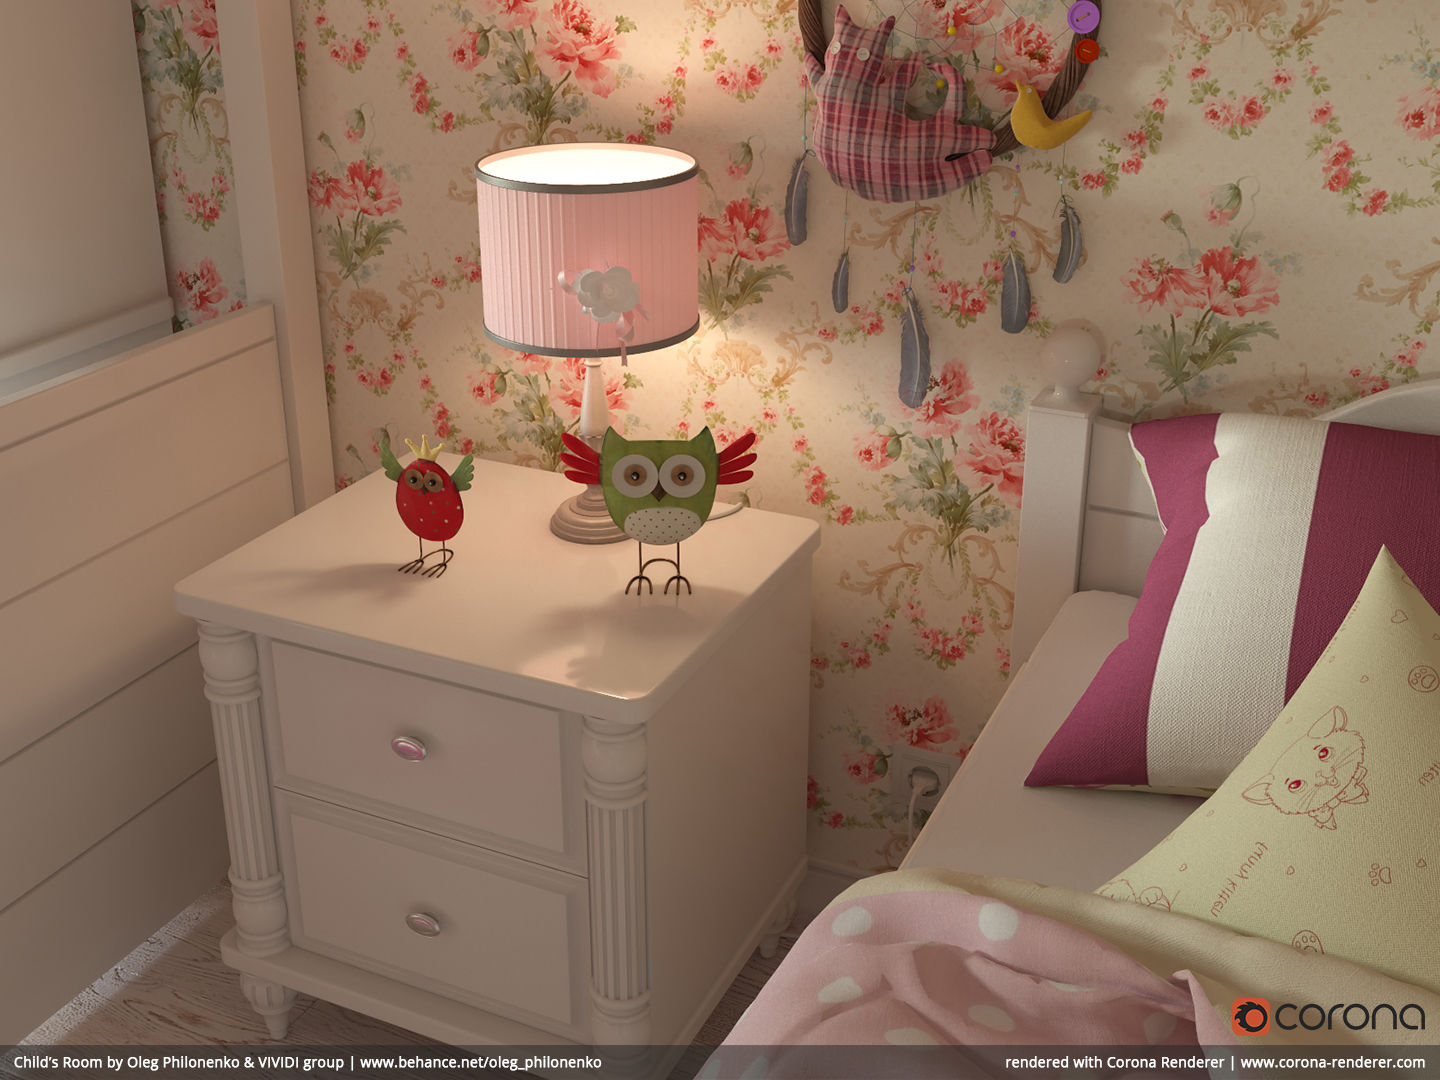 Child's Room 04 by Oleg Philonenko & VIVIDI group